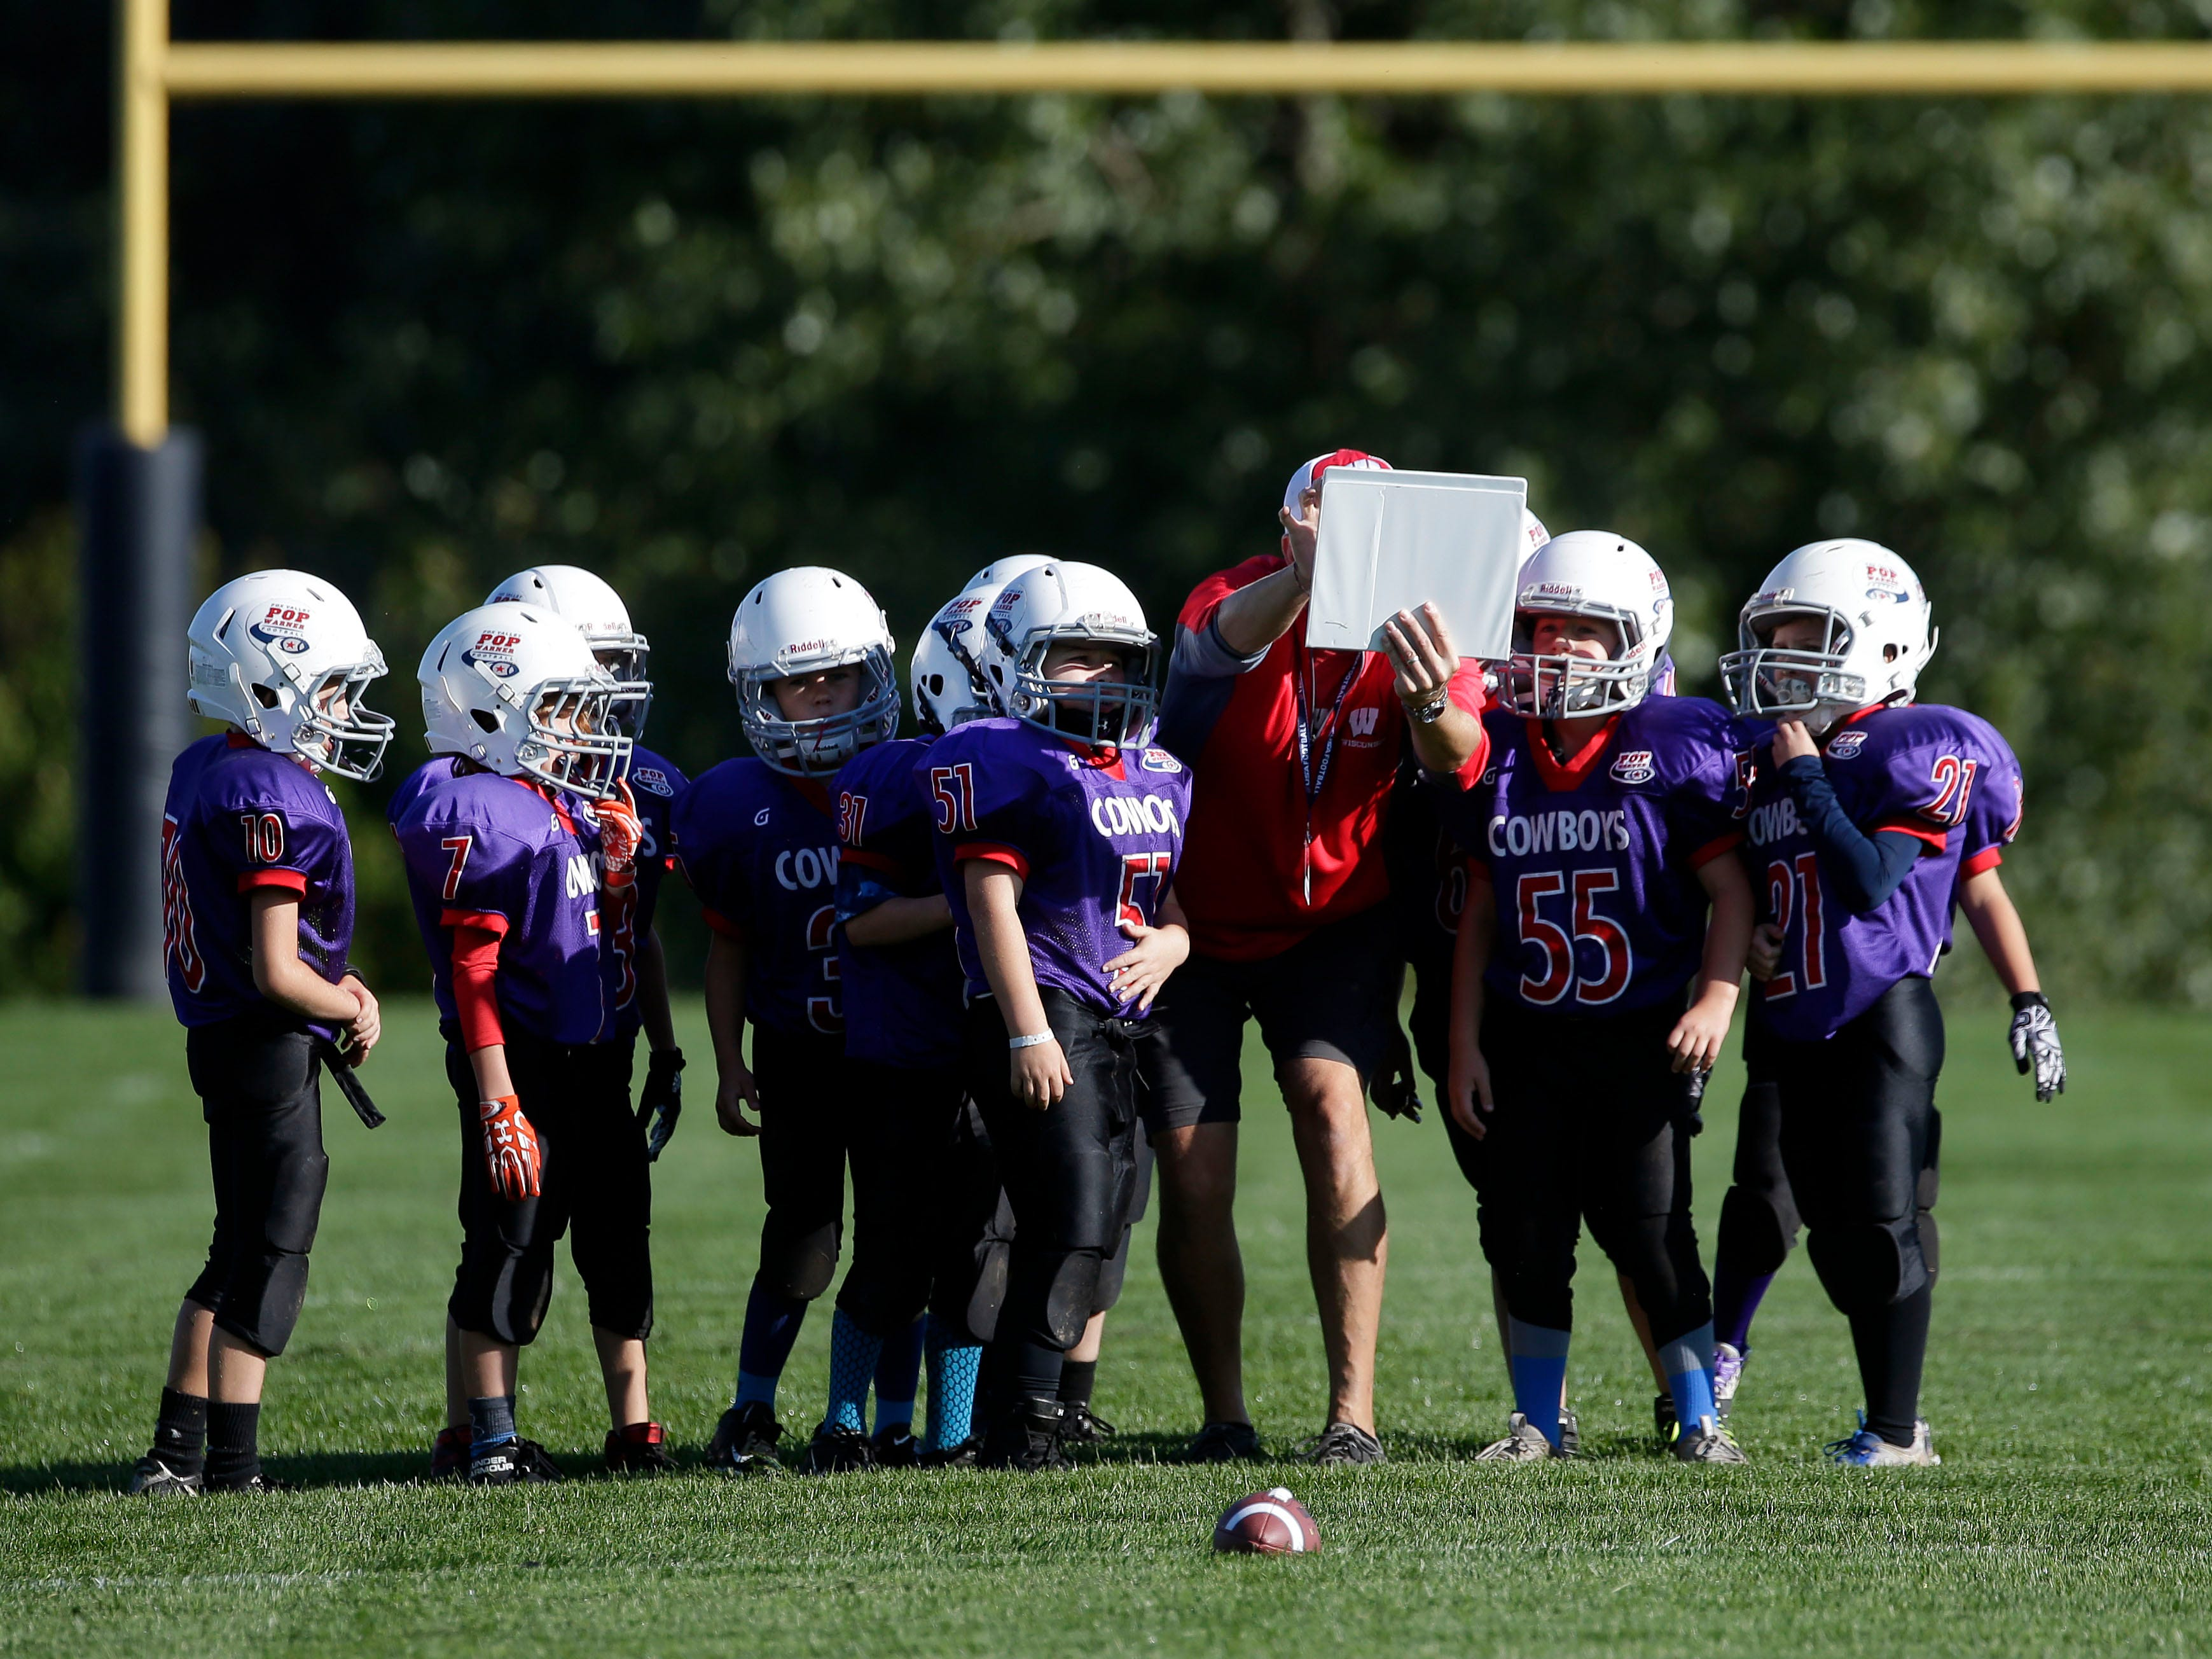 The Cowboys in the Mitey Mites Division play an early game as Fox Valley Pop Warner Football opens the season Saturday, September 8, 2018, at Plamann Park in Grand Chute, Wis.Ron Page/USA TODAY NETWORK-Wisconsin